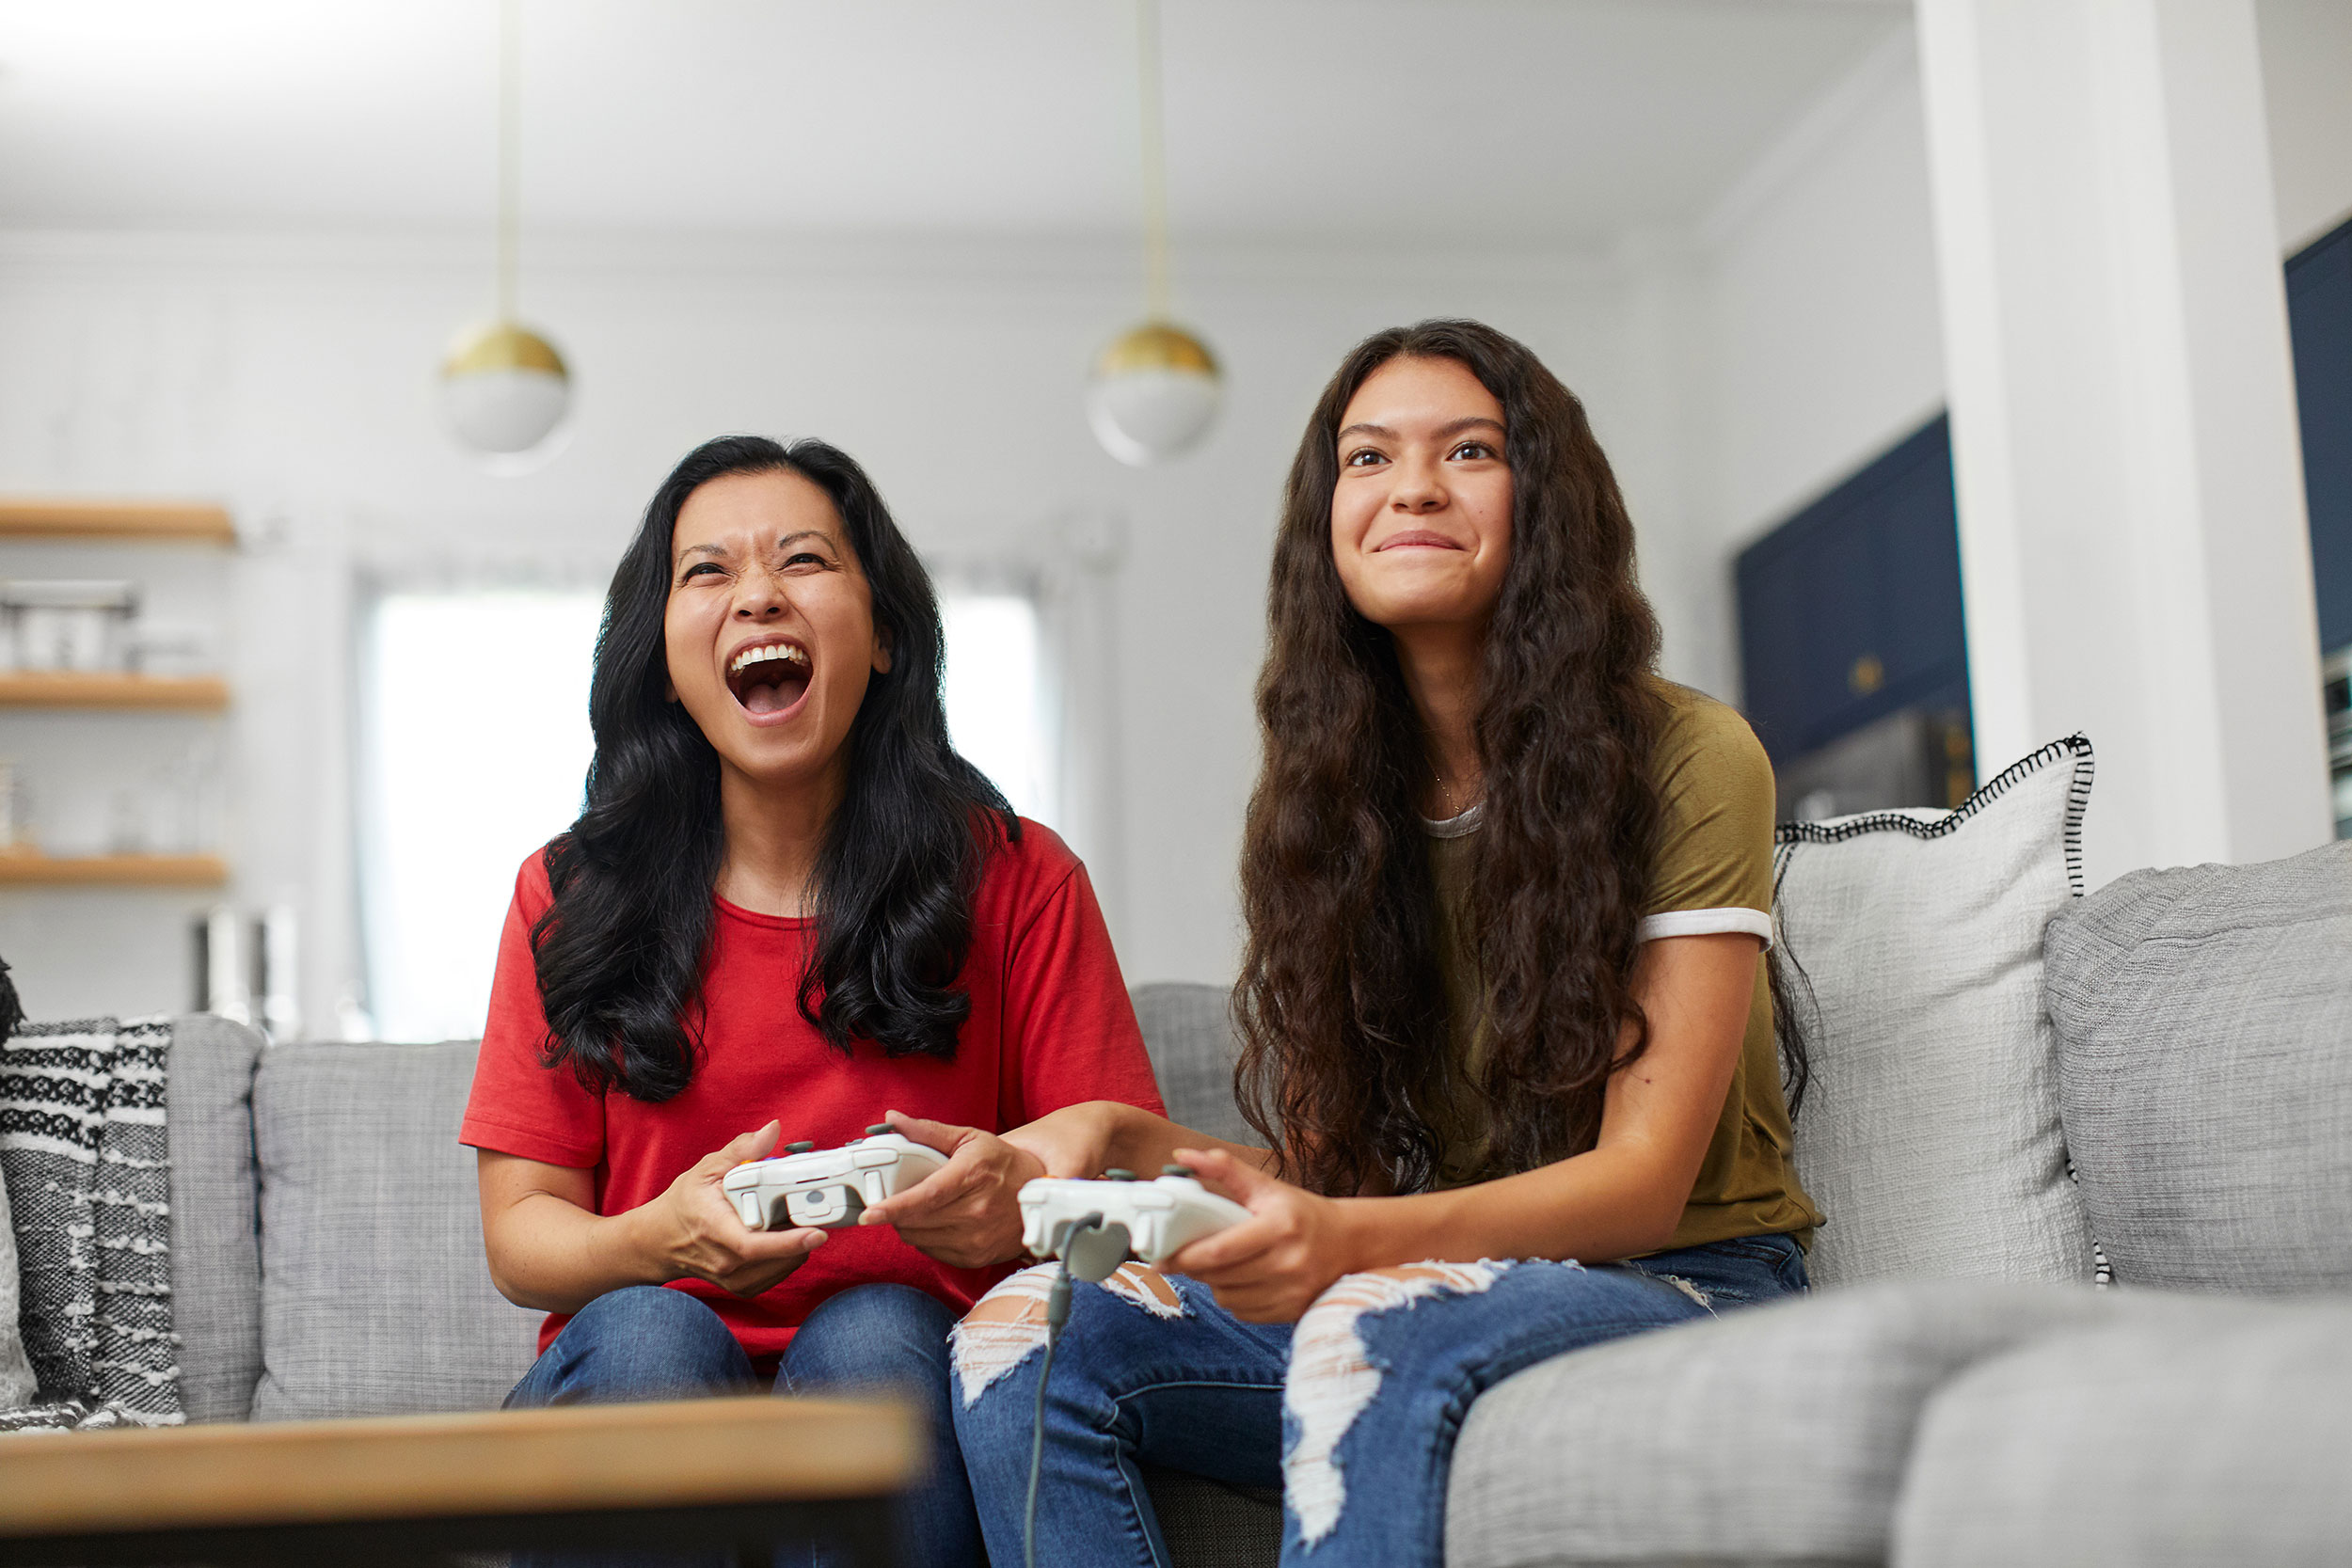 Natalia Weedy Calix two young women playing a console video game